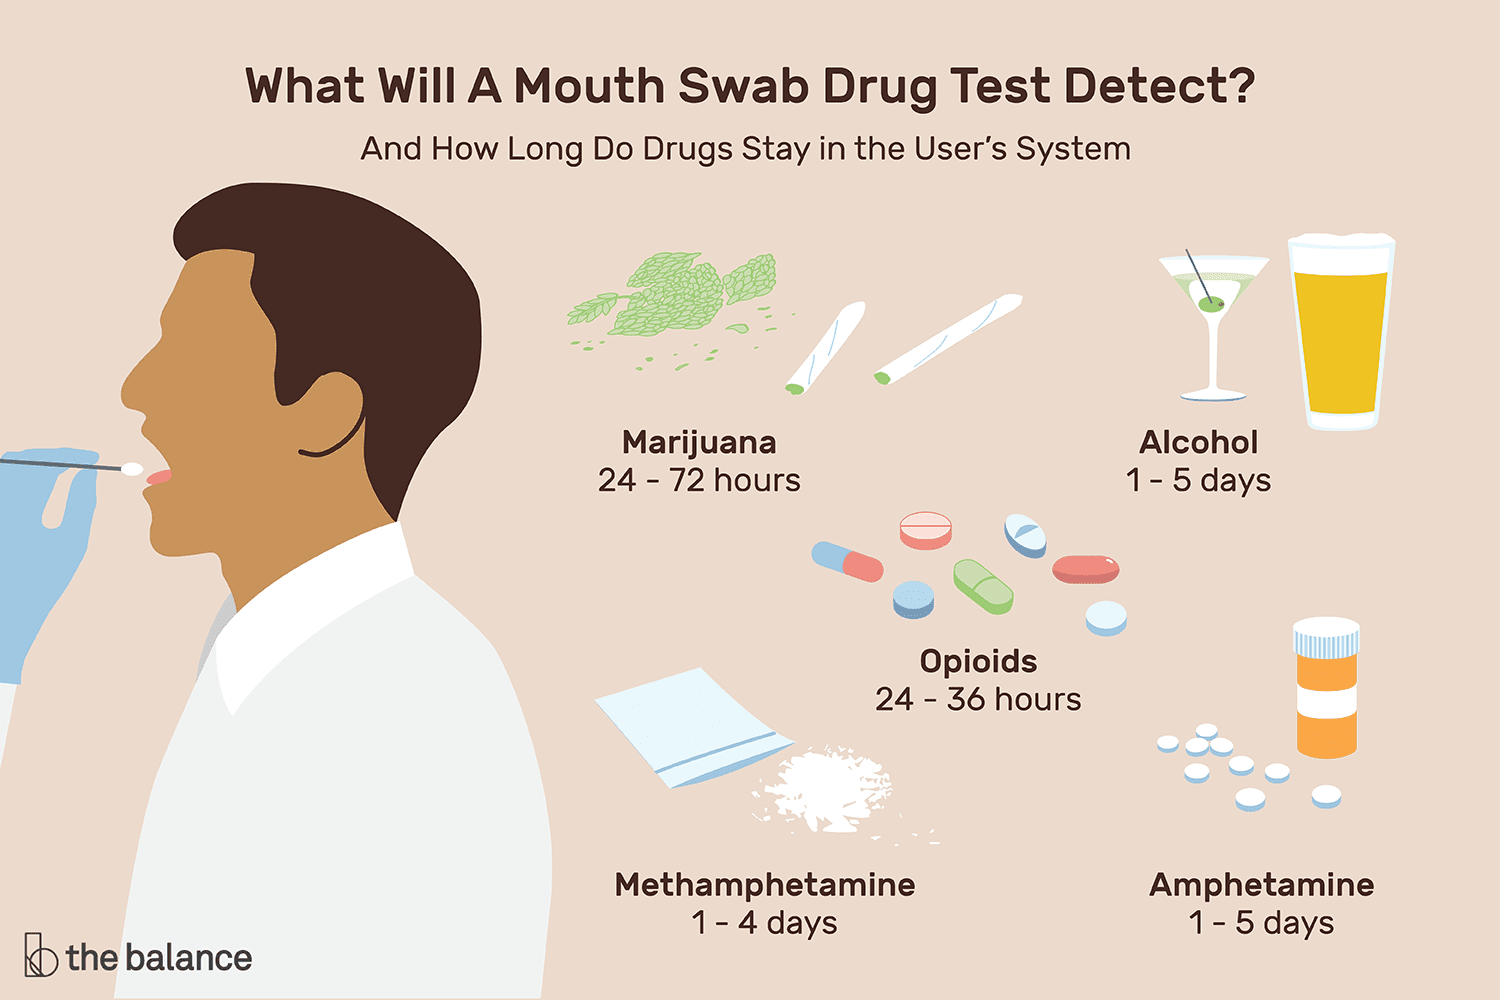 What is a Mouth Swab Drug Test?